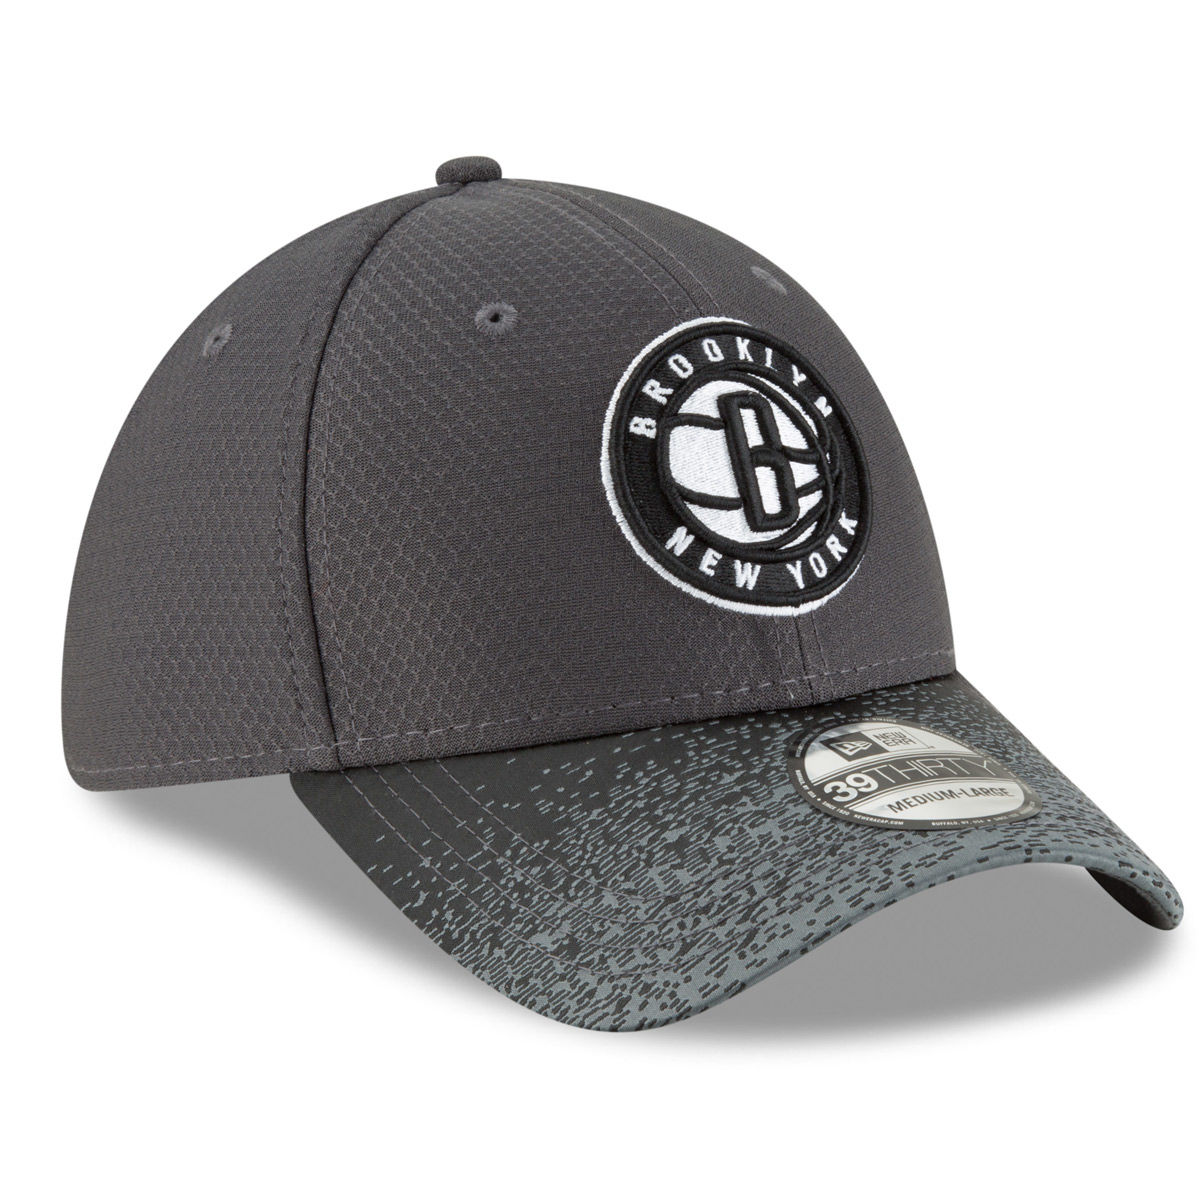 Brooklyn Nets Adult 2018 39THIRTY Hat